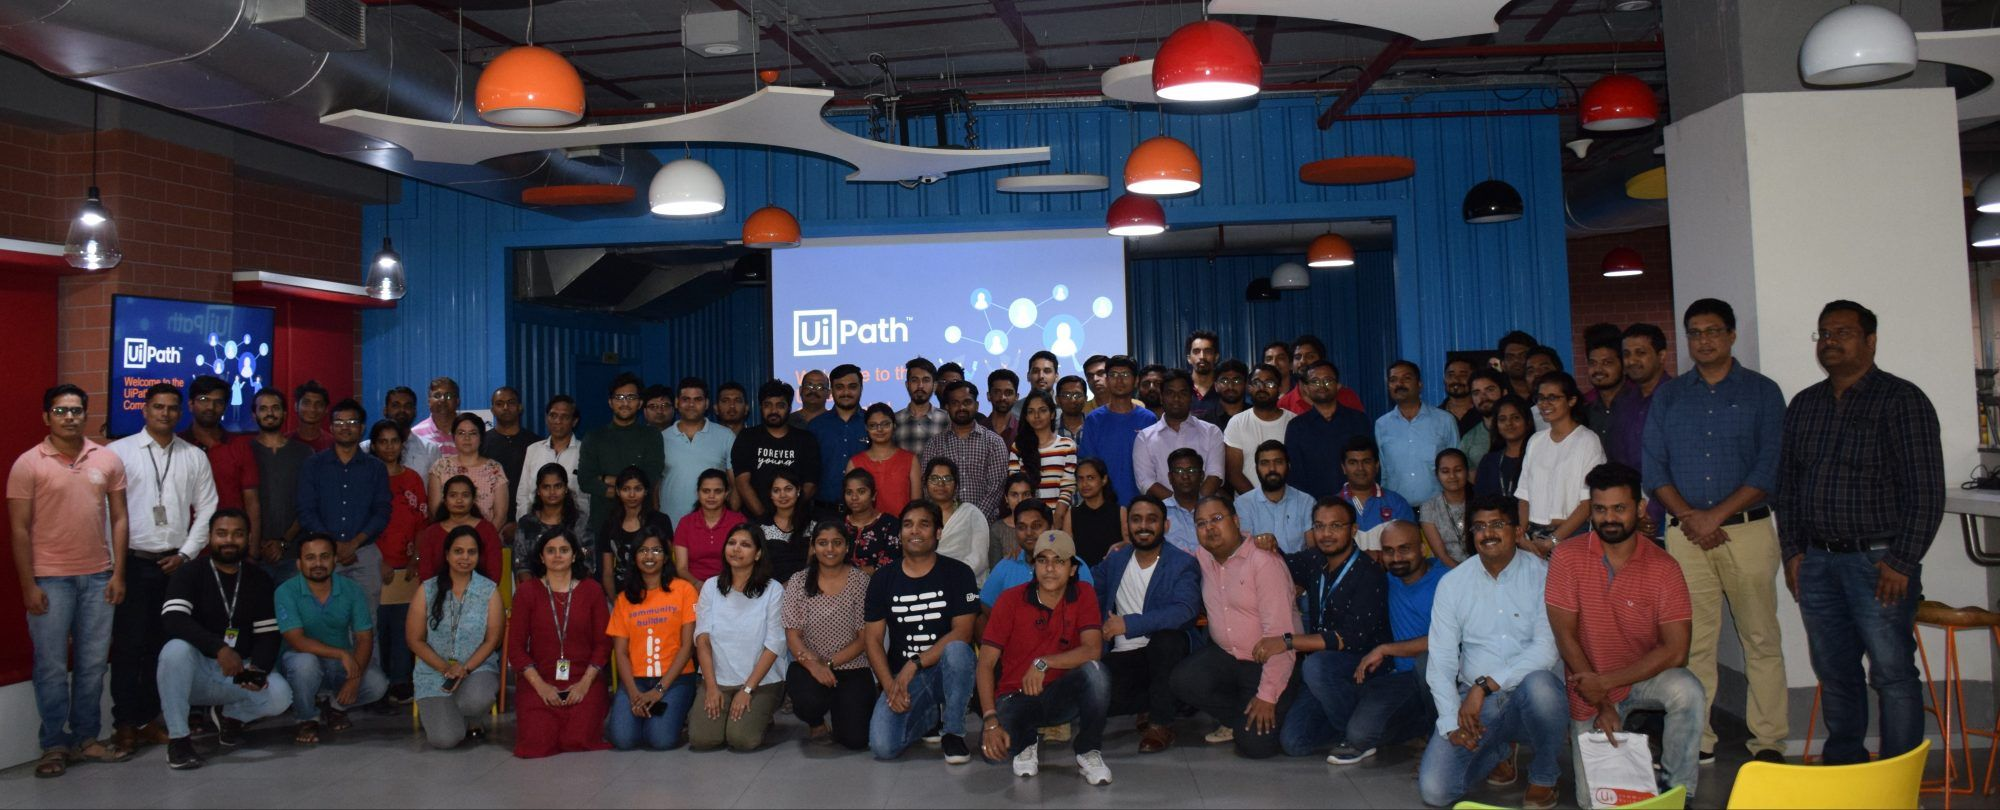 UiPath RPA Developer Meetup in Pune - Powered by Globant - Globant Blog